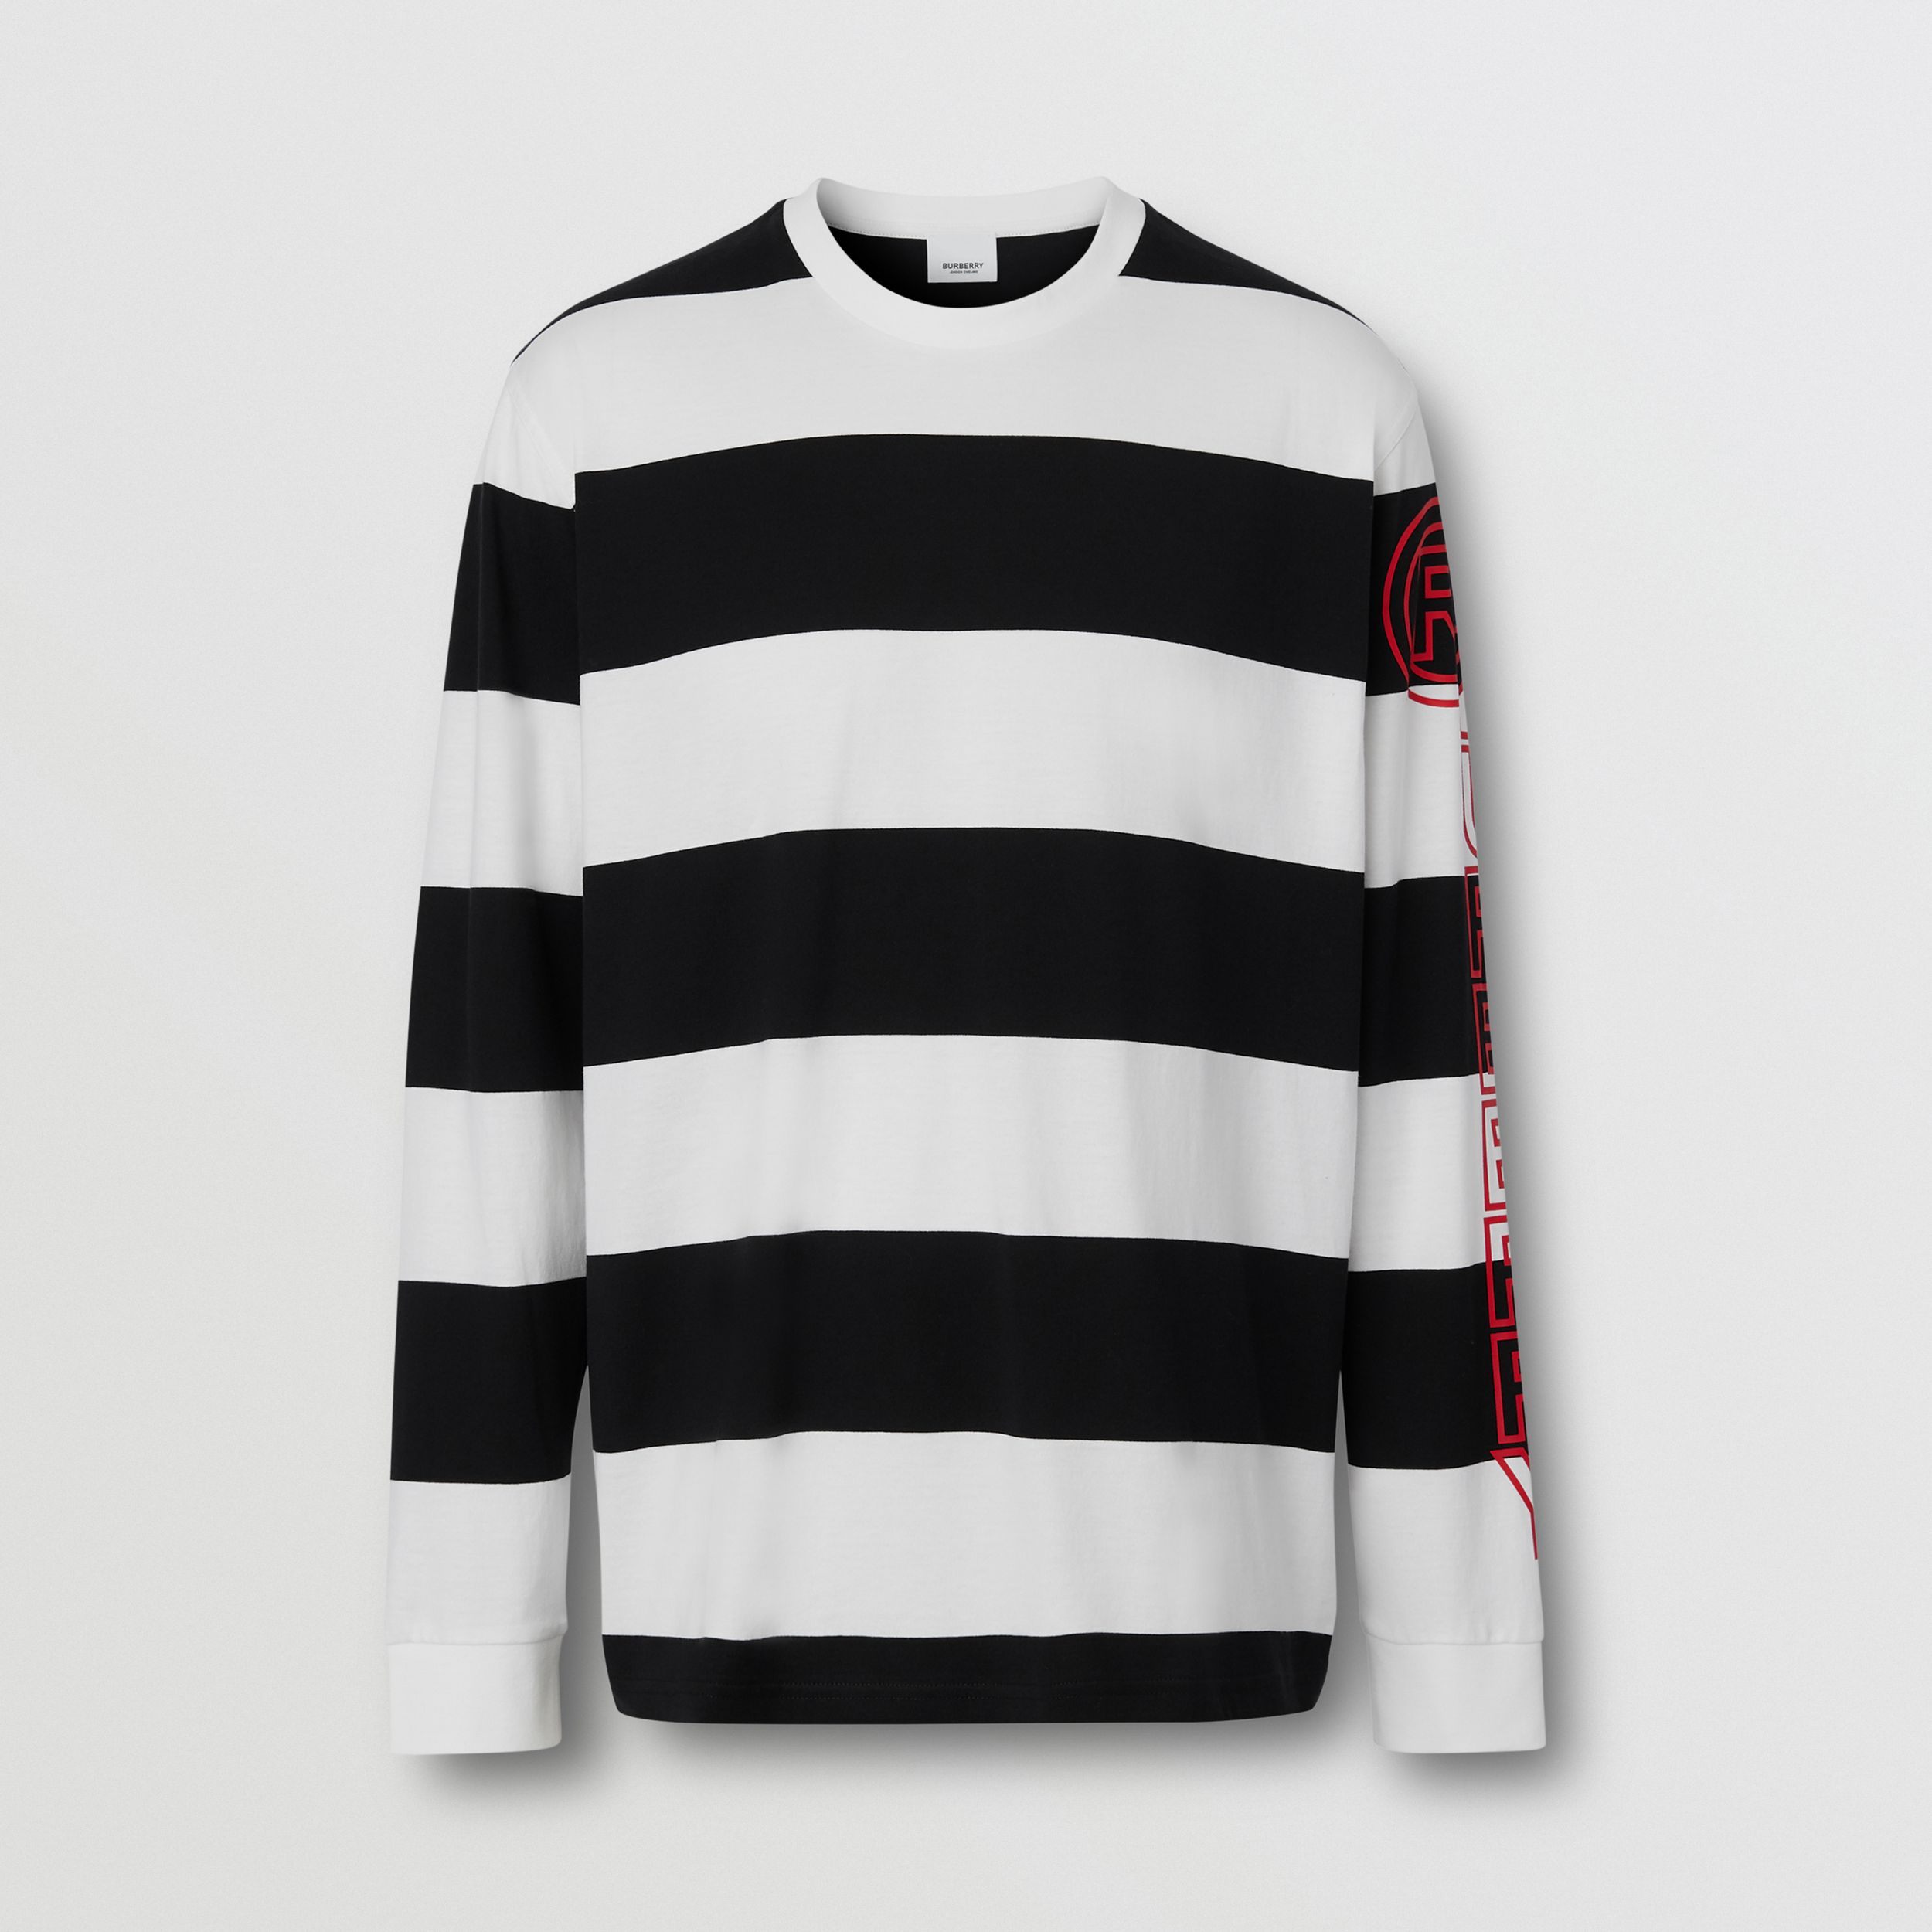 Long-sleeve Striped Cotton Oversized Top in Black/white - Men | Burberry - 1